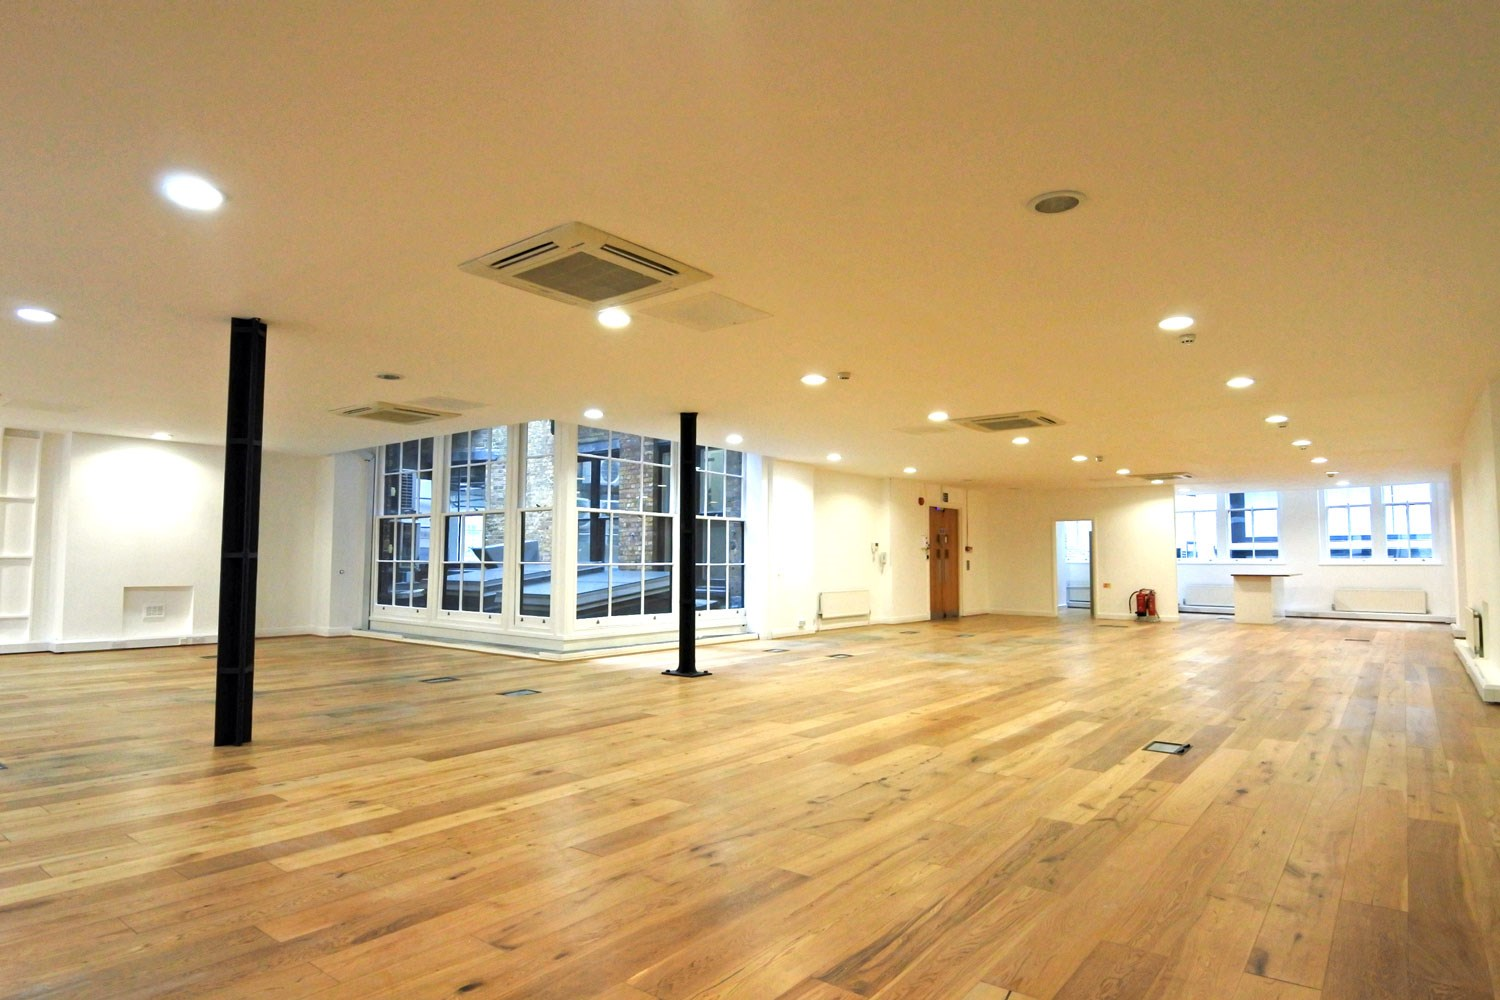 Victoria House 1 Leonard Circus First Floor EC2A 4DQ Shoreditch Office Internal 2